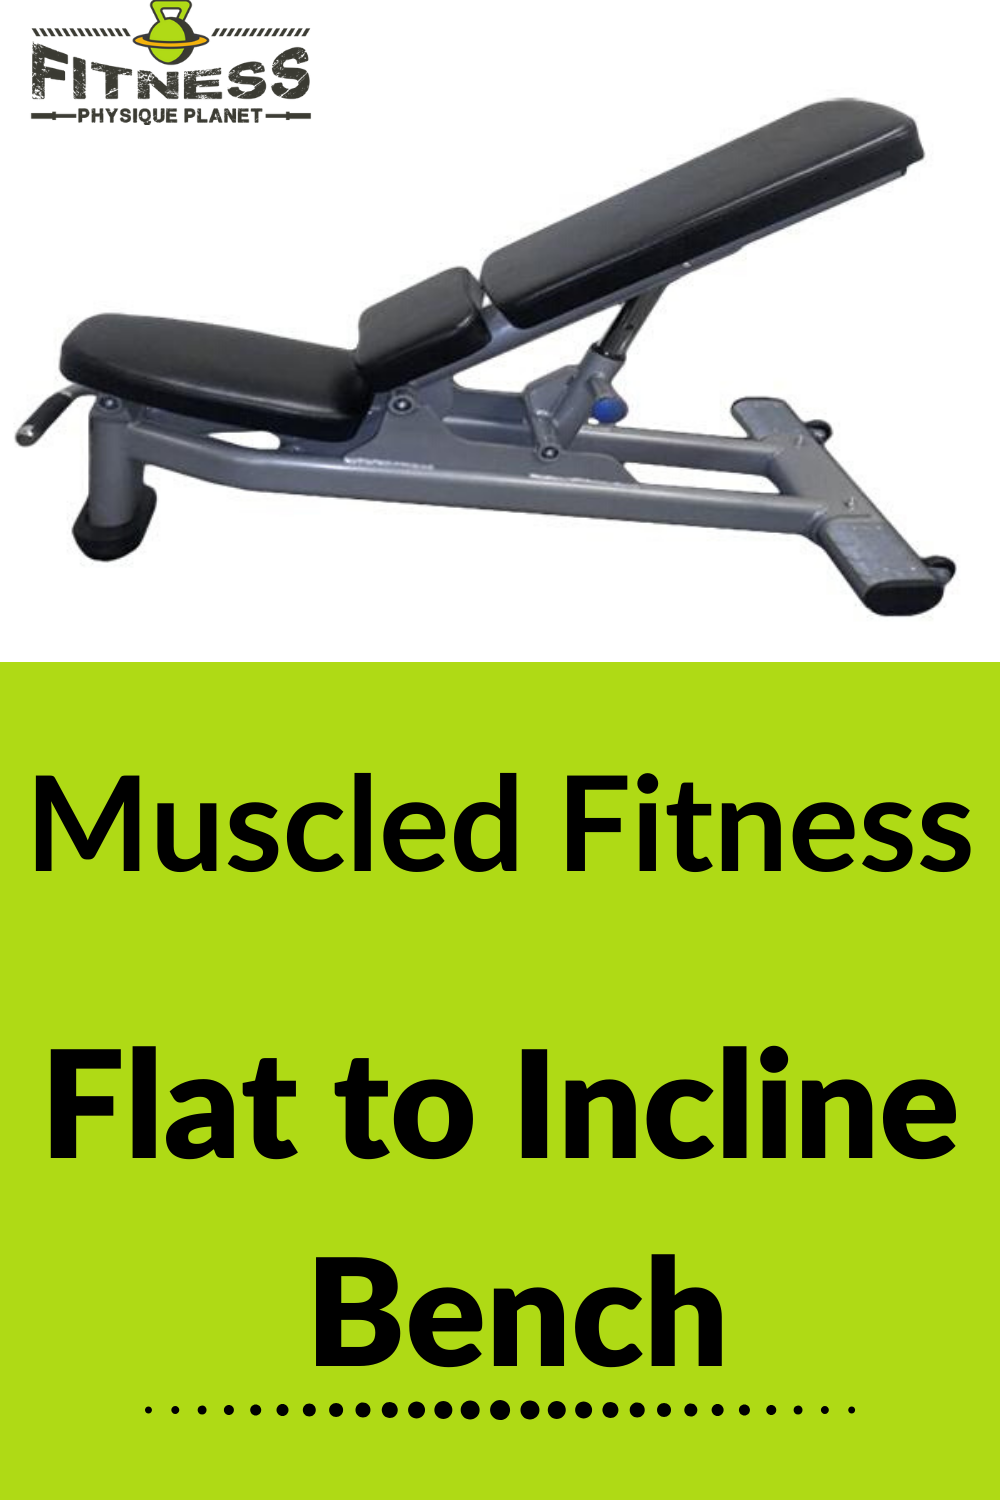 Muscled Fitness Flat To Incline Bench In 2020 Muscle Fitness Muscle No Equipment Workout